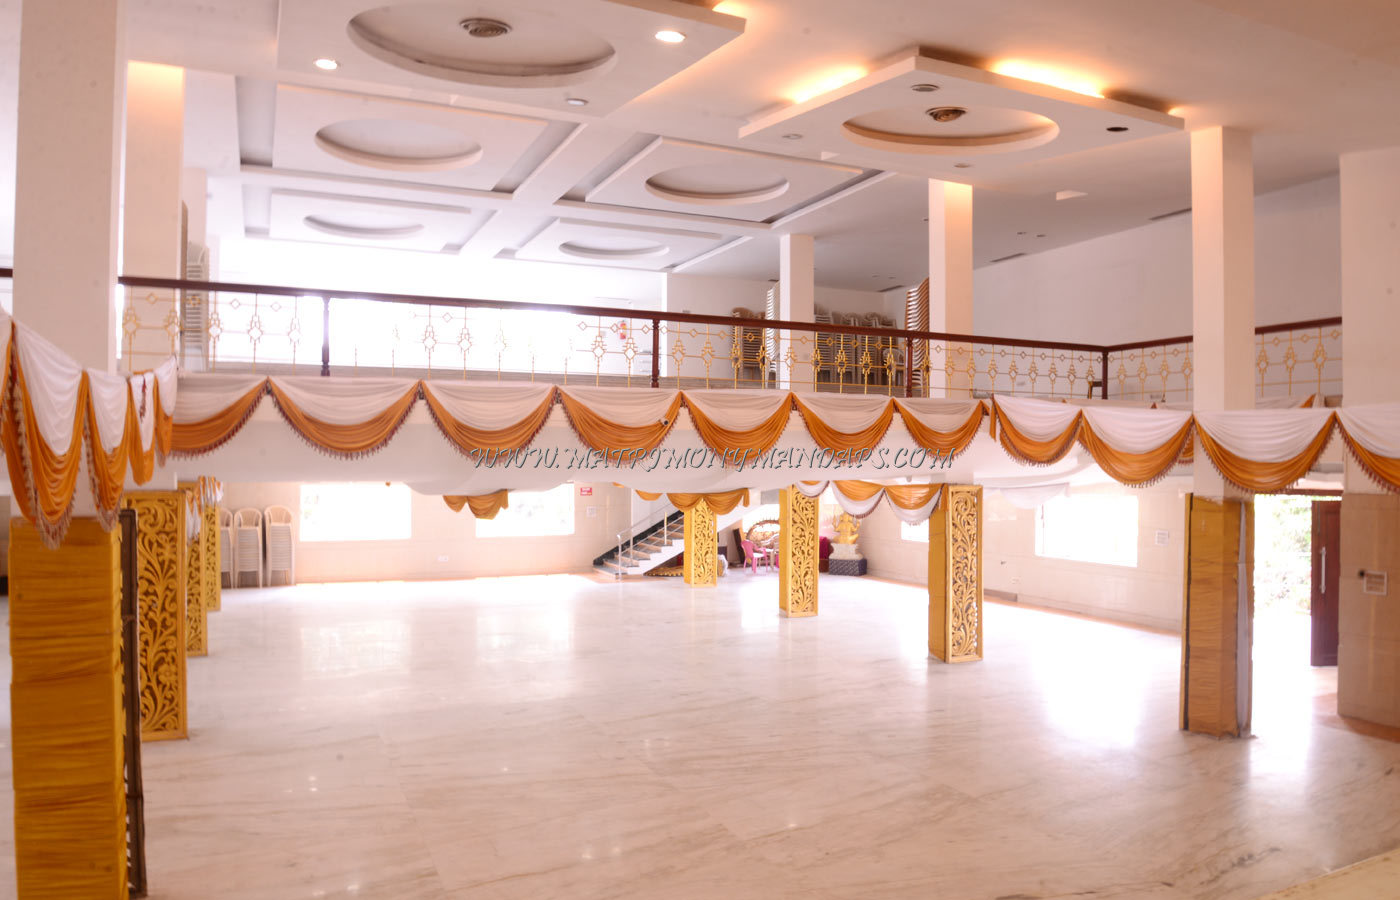 Find the availability of the Jeyhandran Mahal (A/C) in Keelkattalai, Chennai and avail special offers